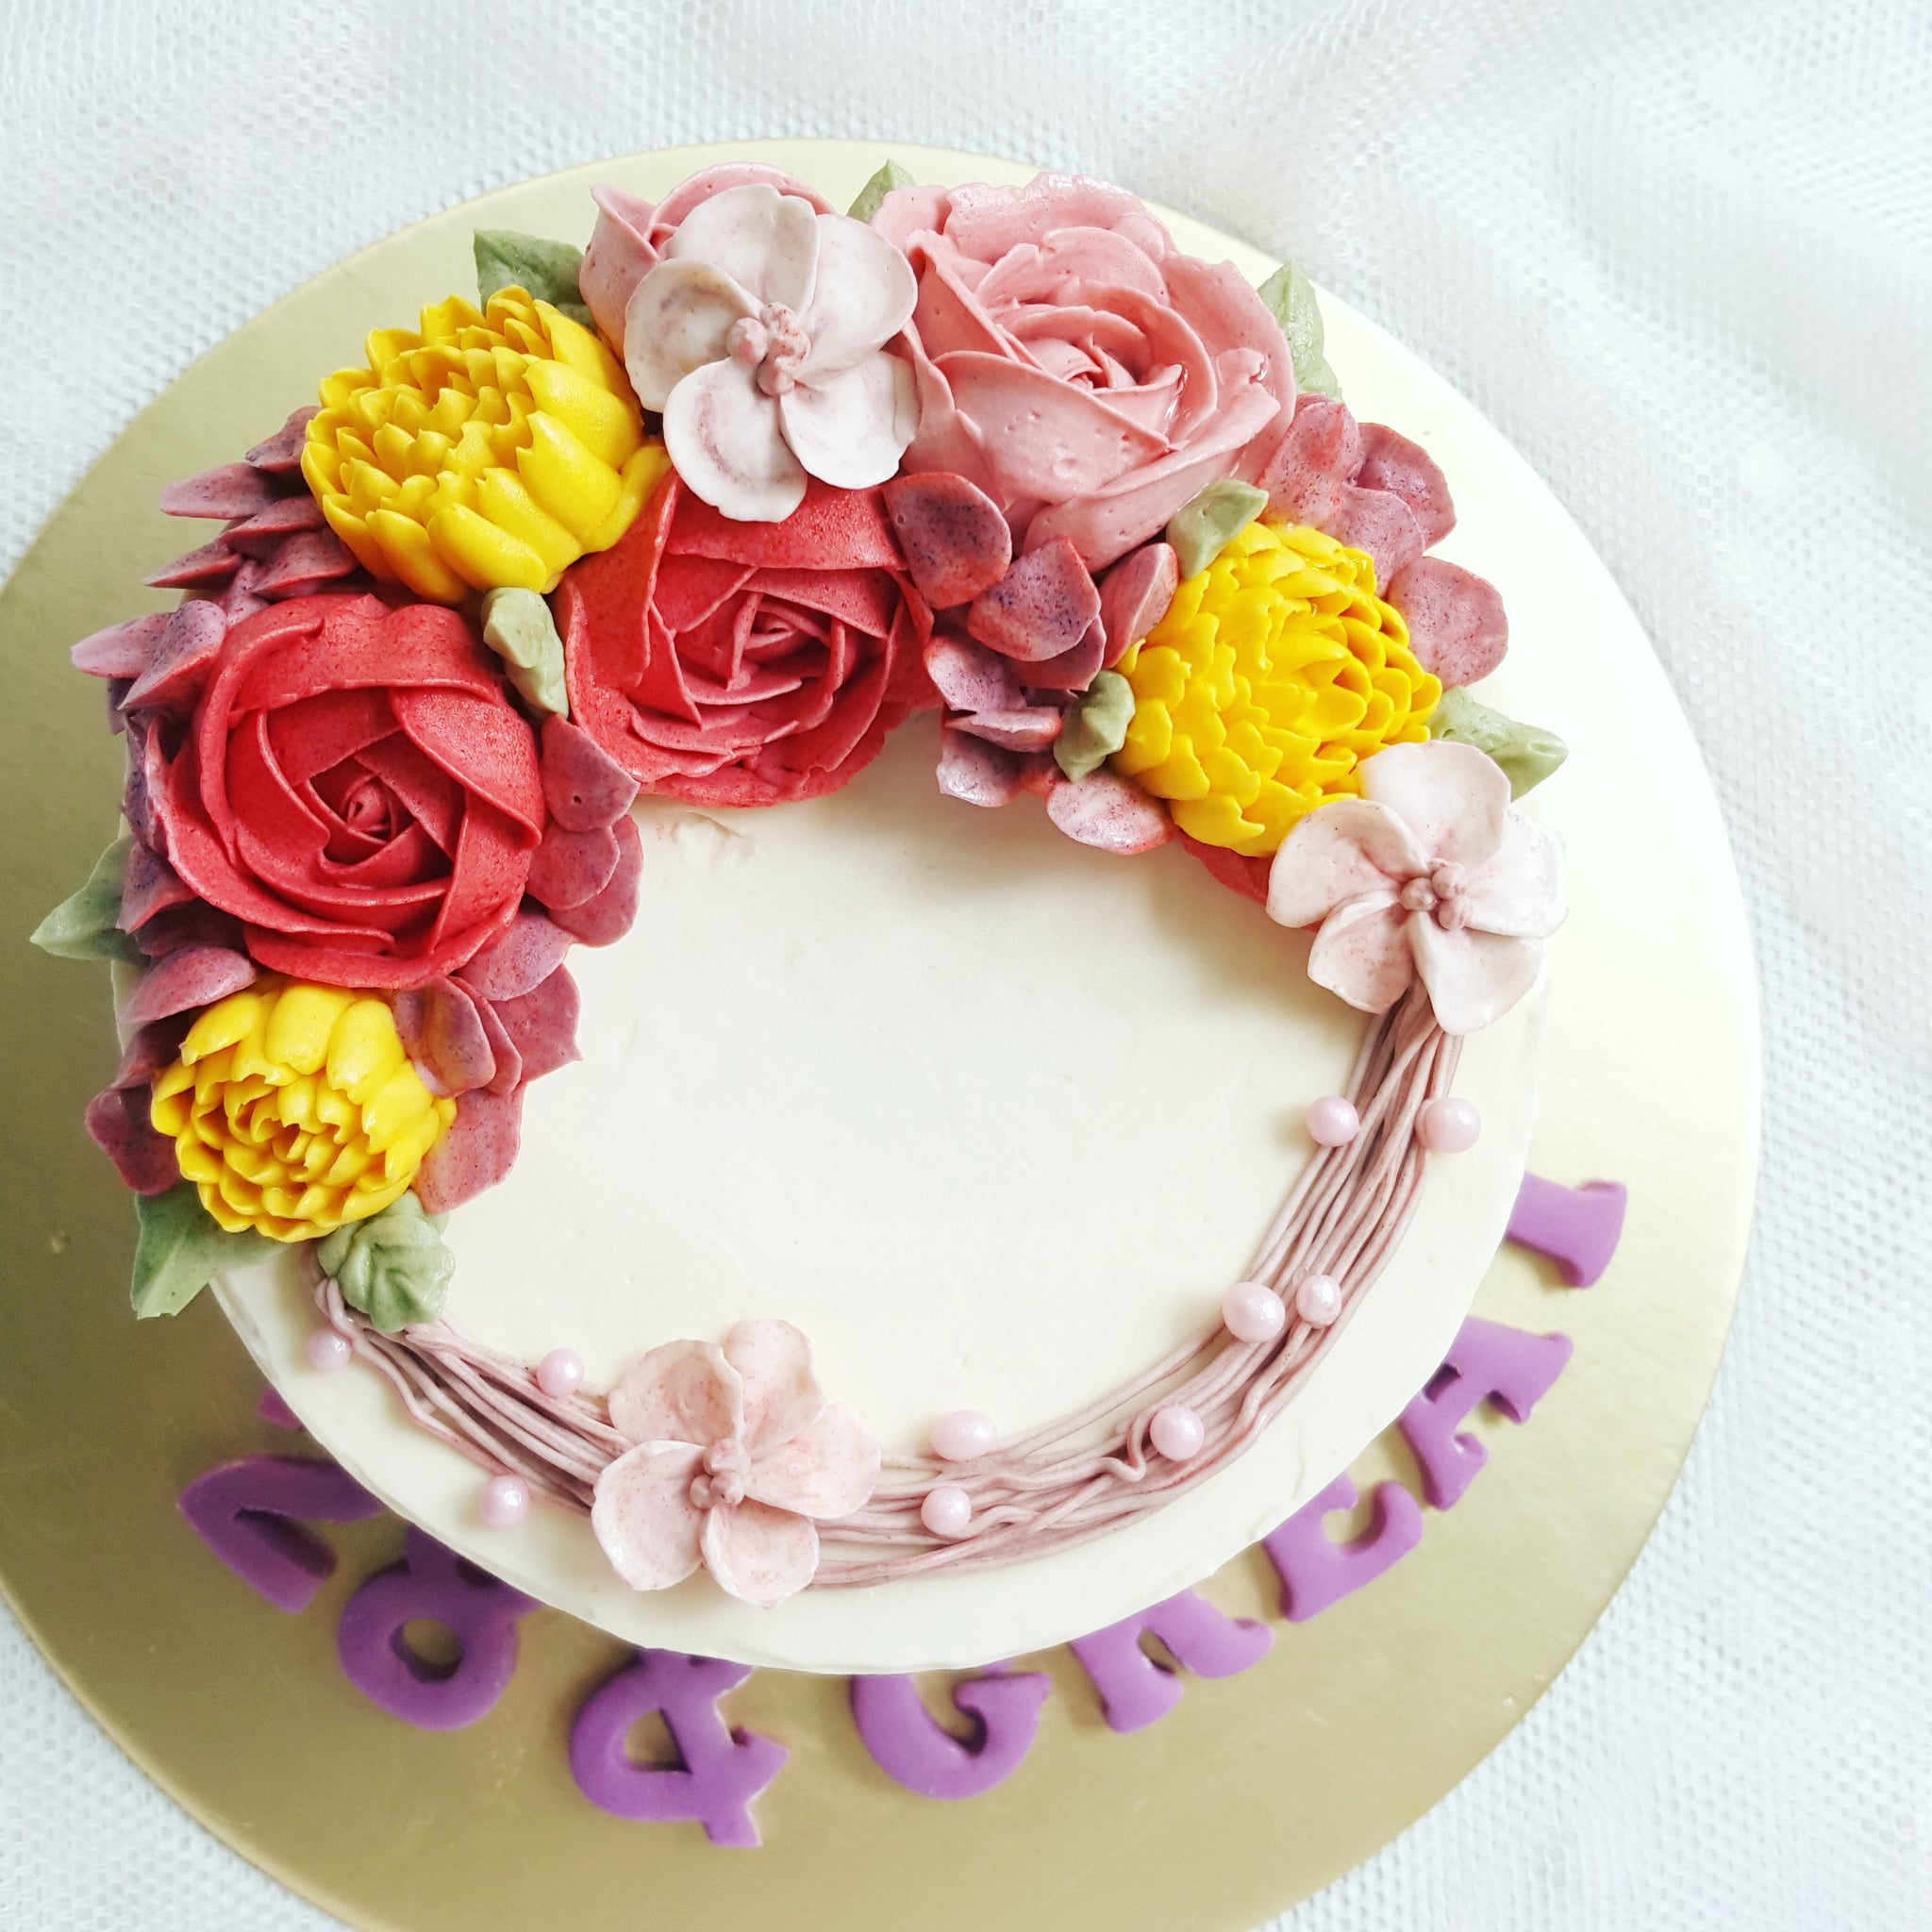 Fairyland Crescent Floral Cake (4-inch)